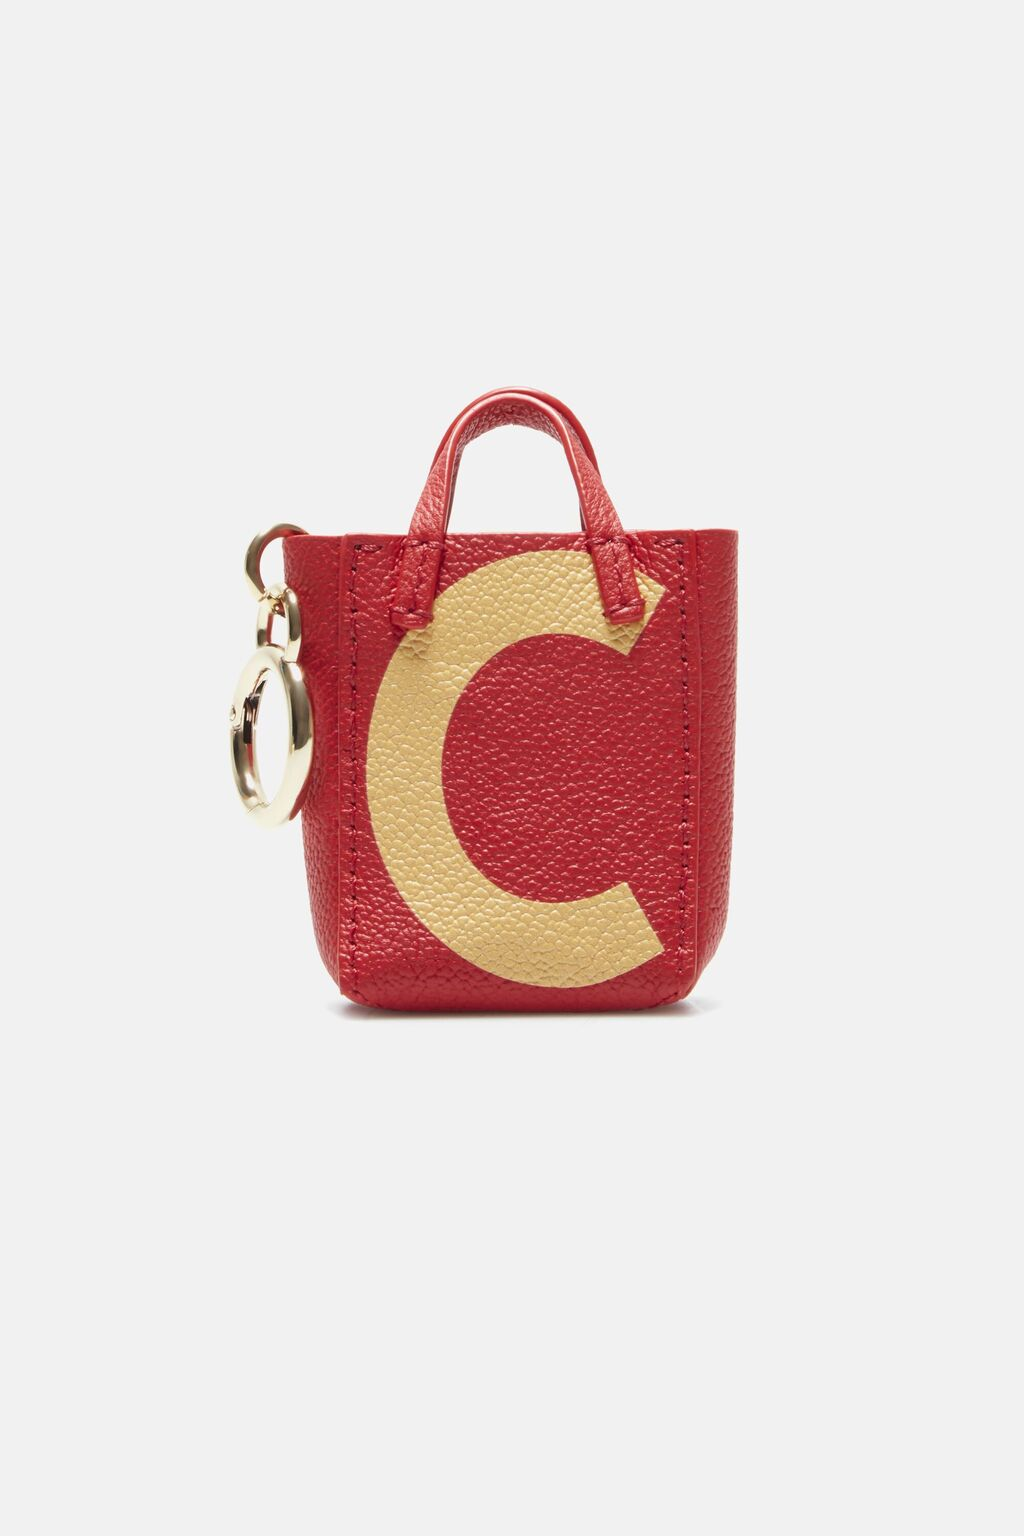 Letter C tote bag charm